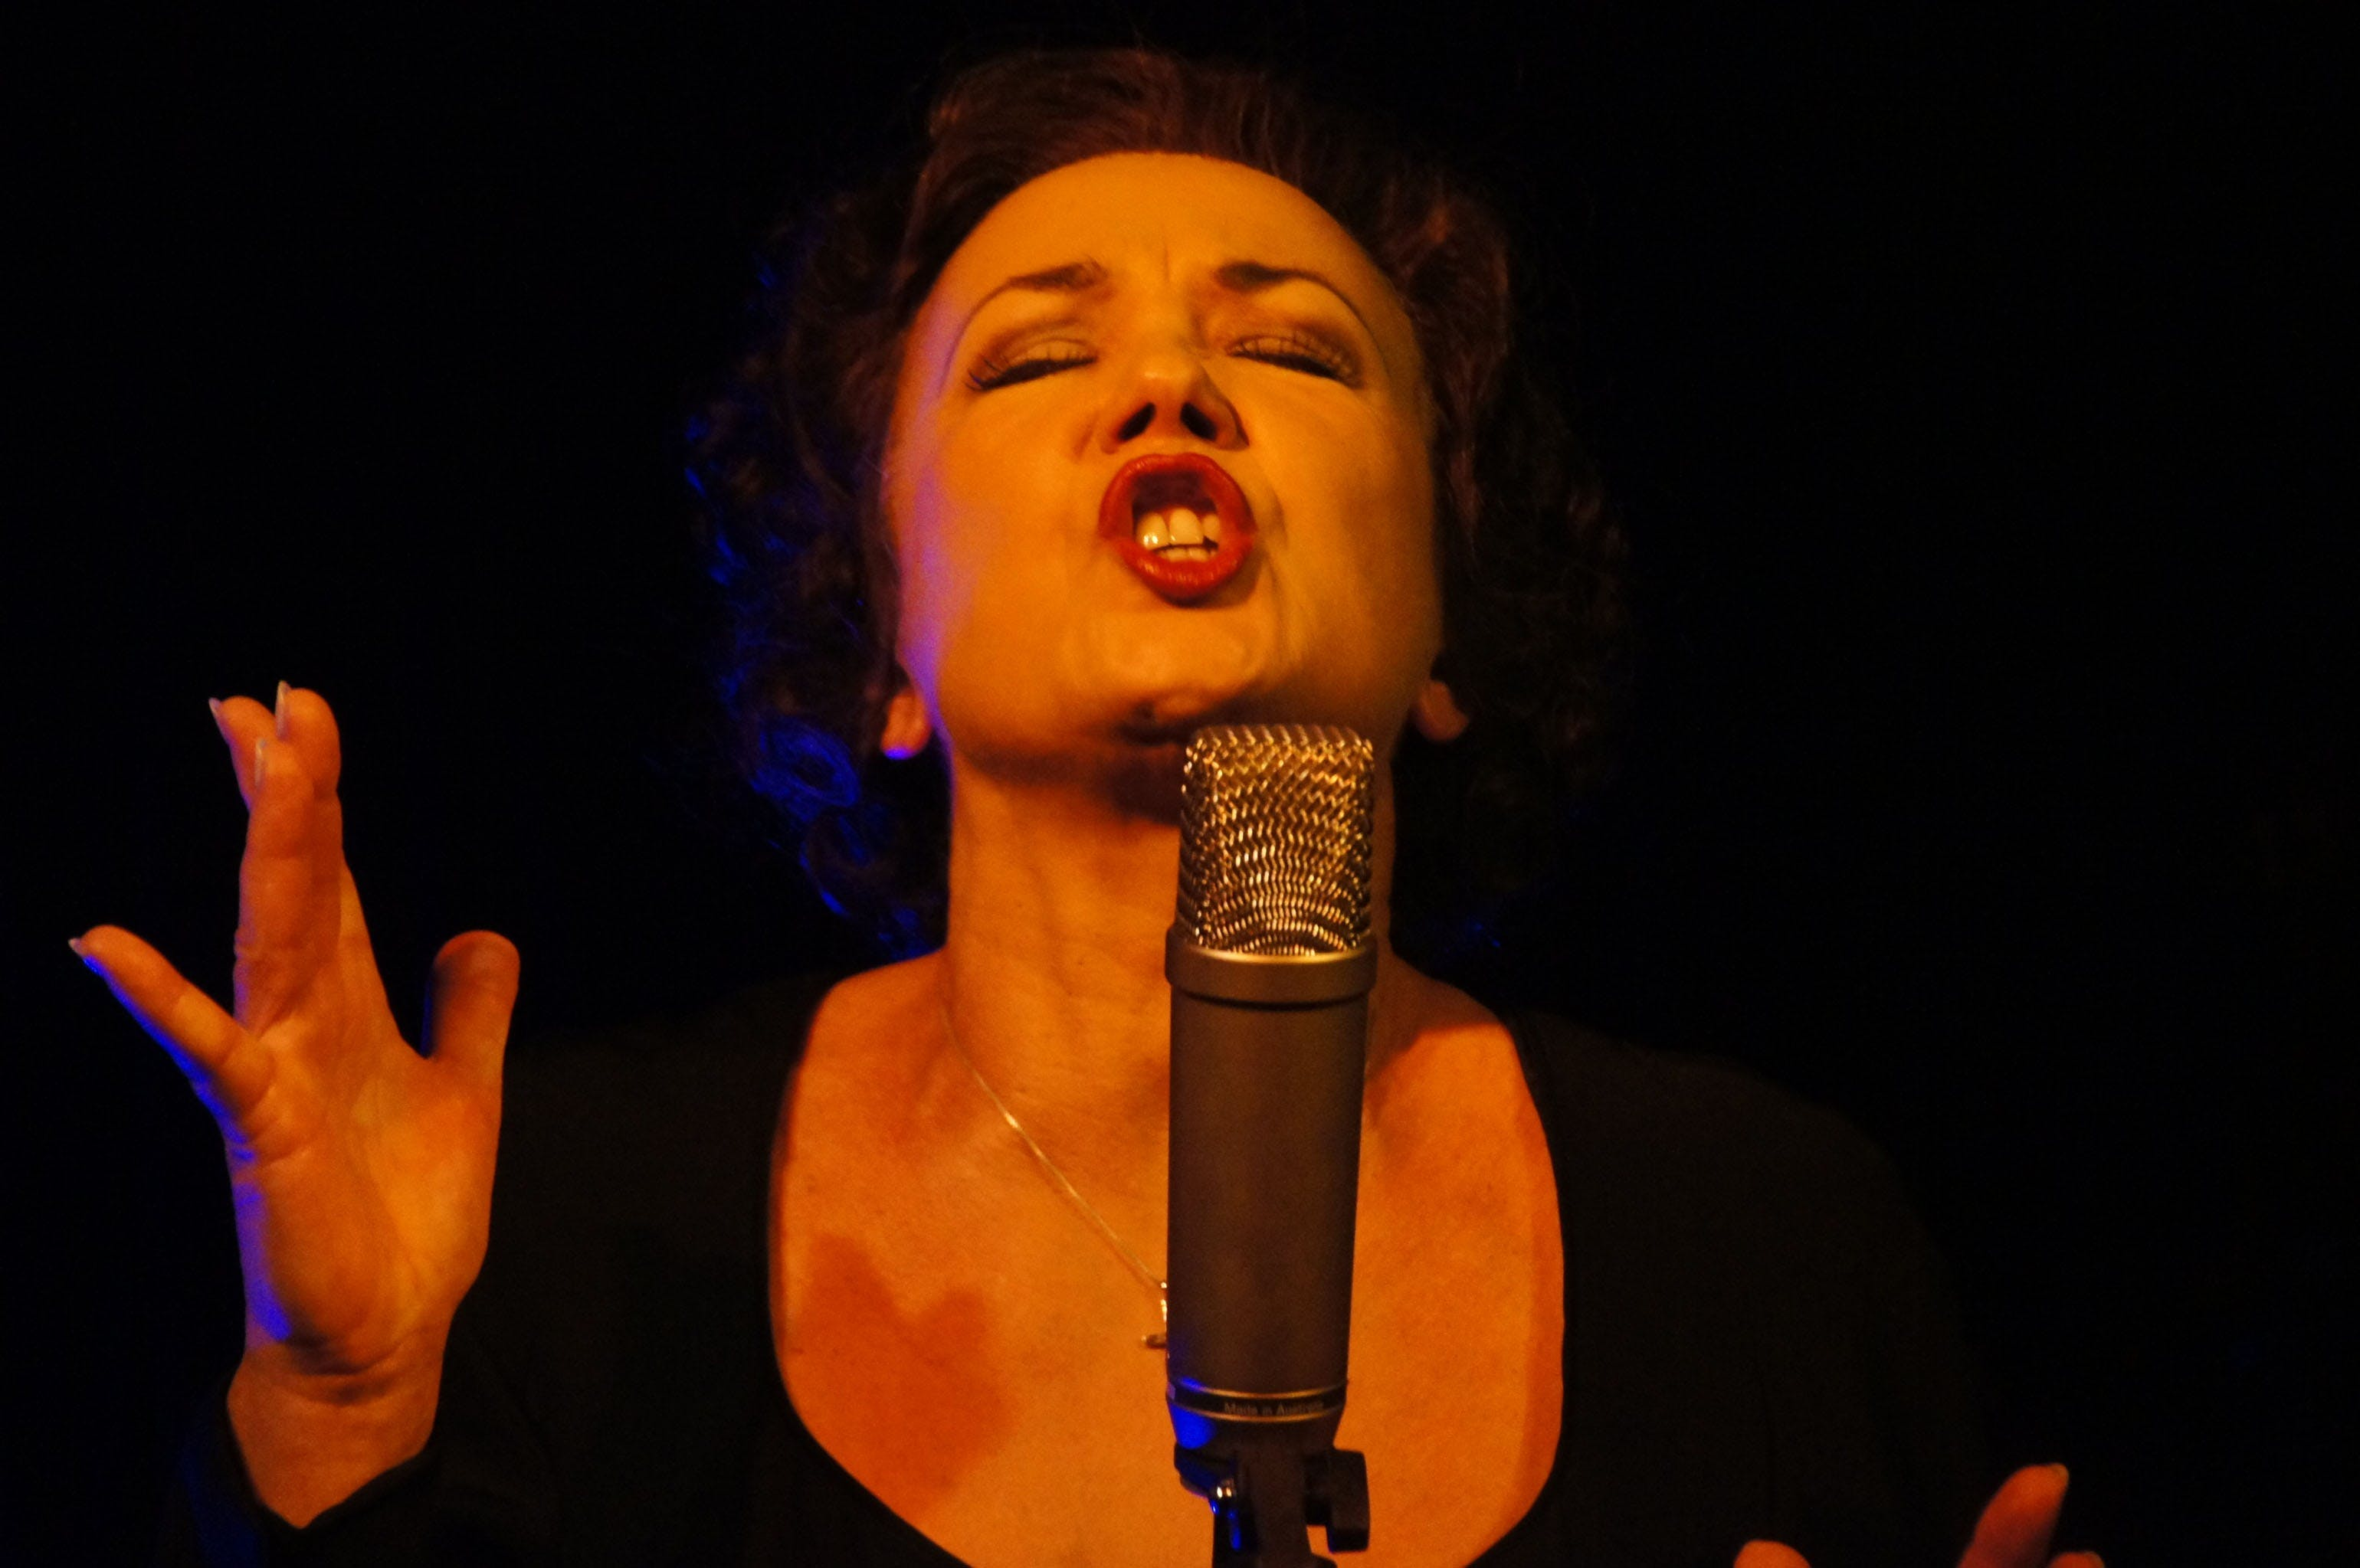 Woman Wearing Black Scoop Neck Shirt Using Microphone With Stand